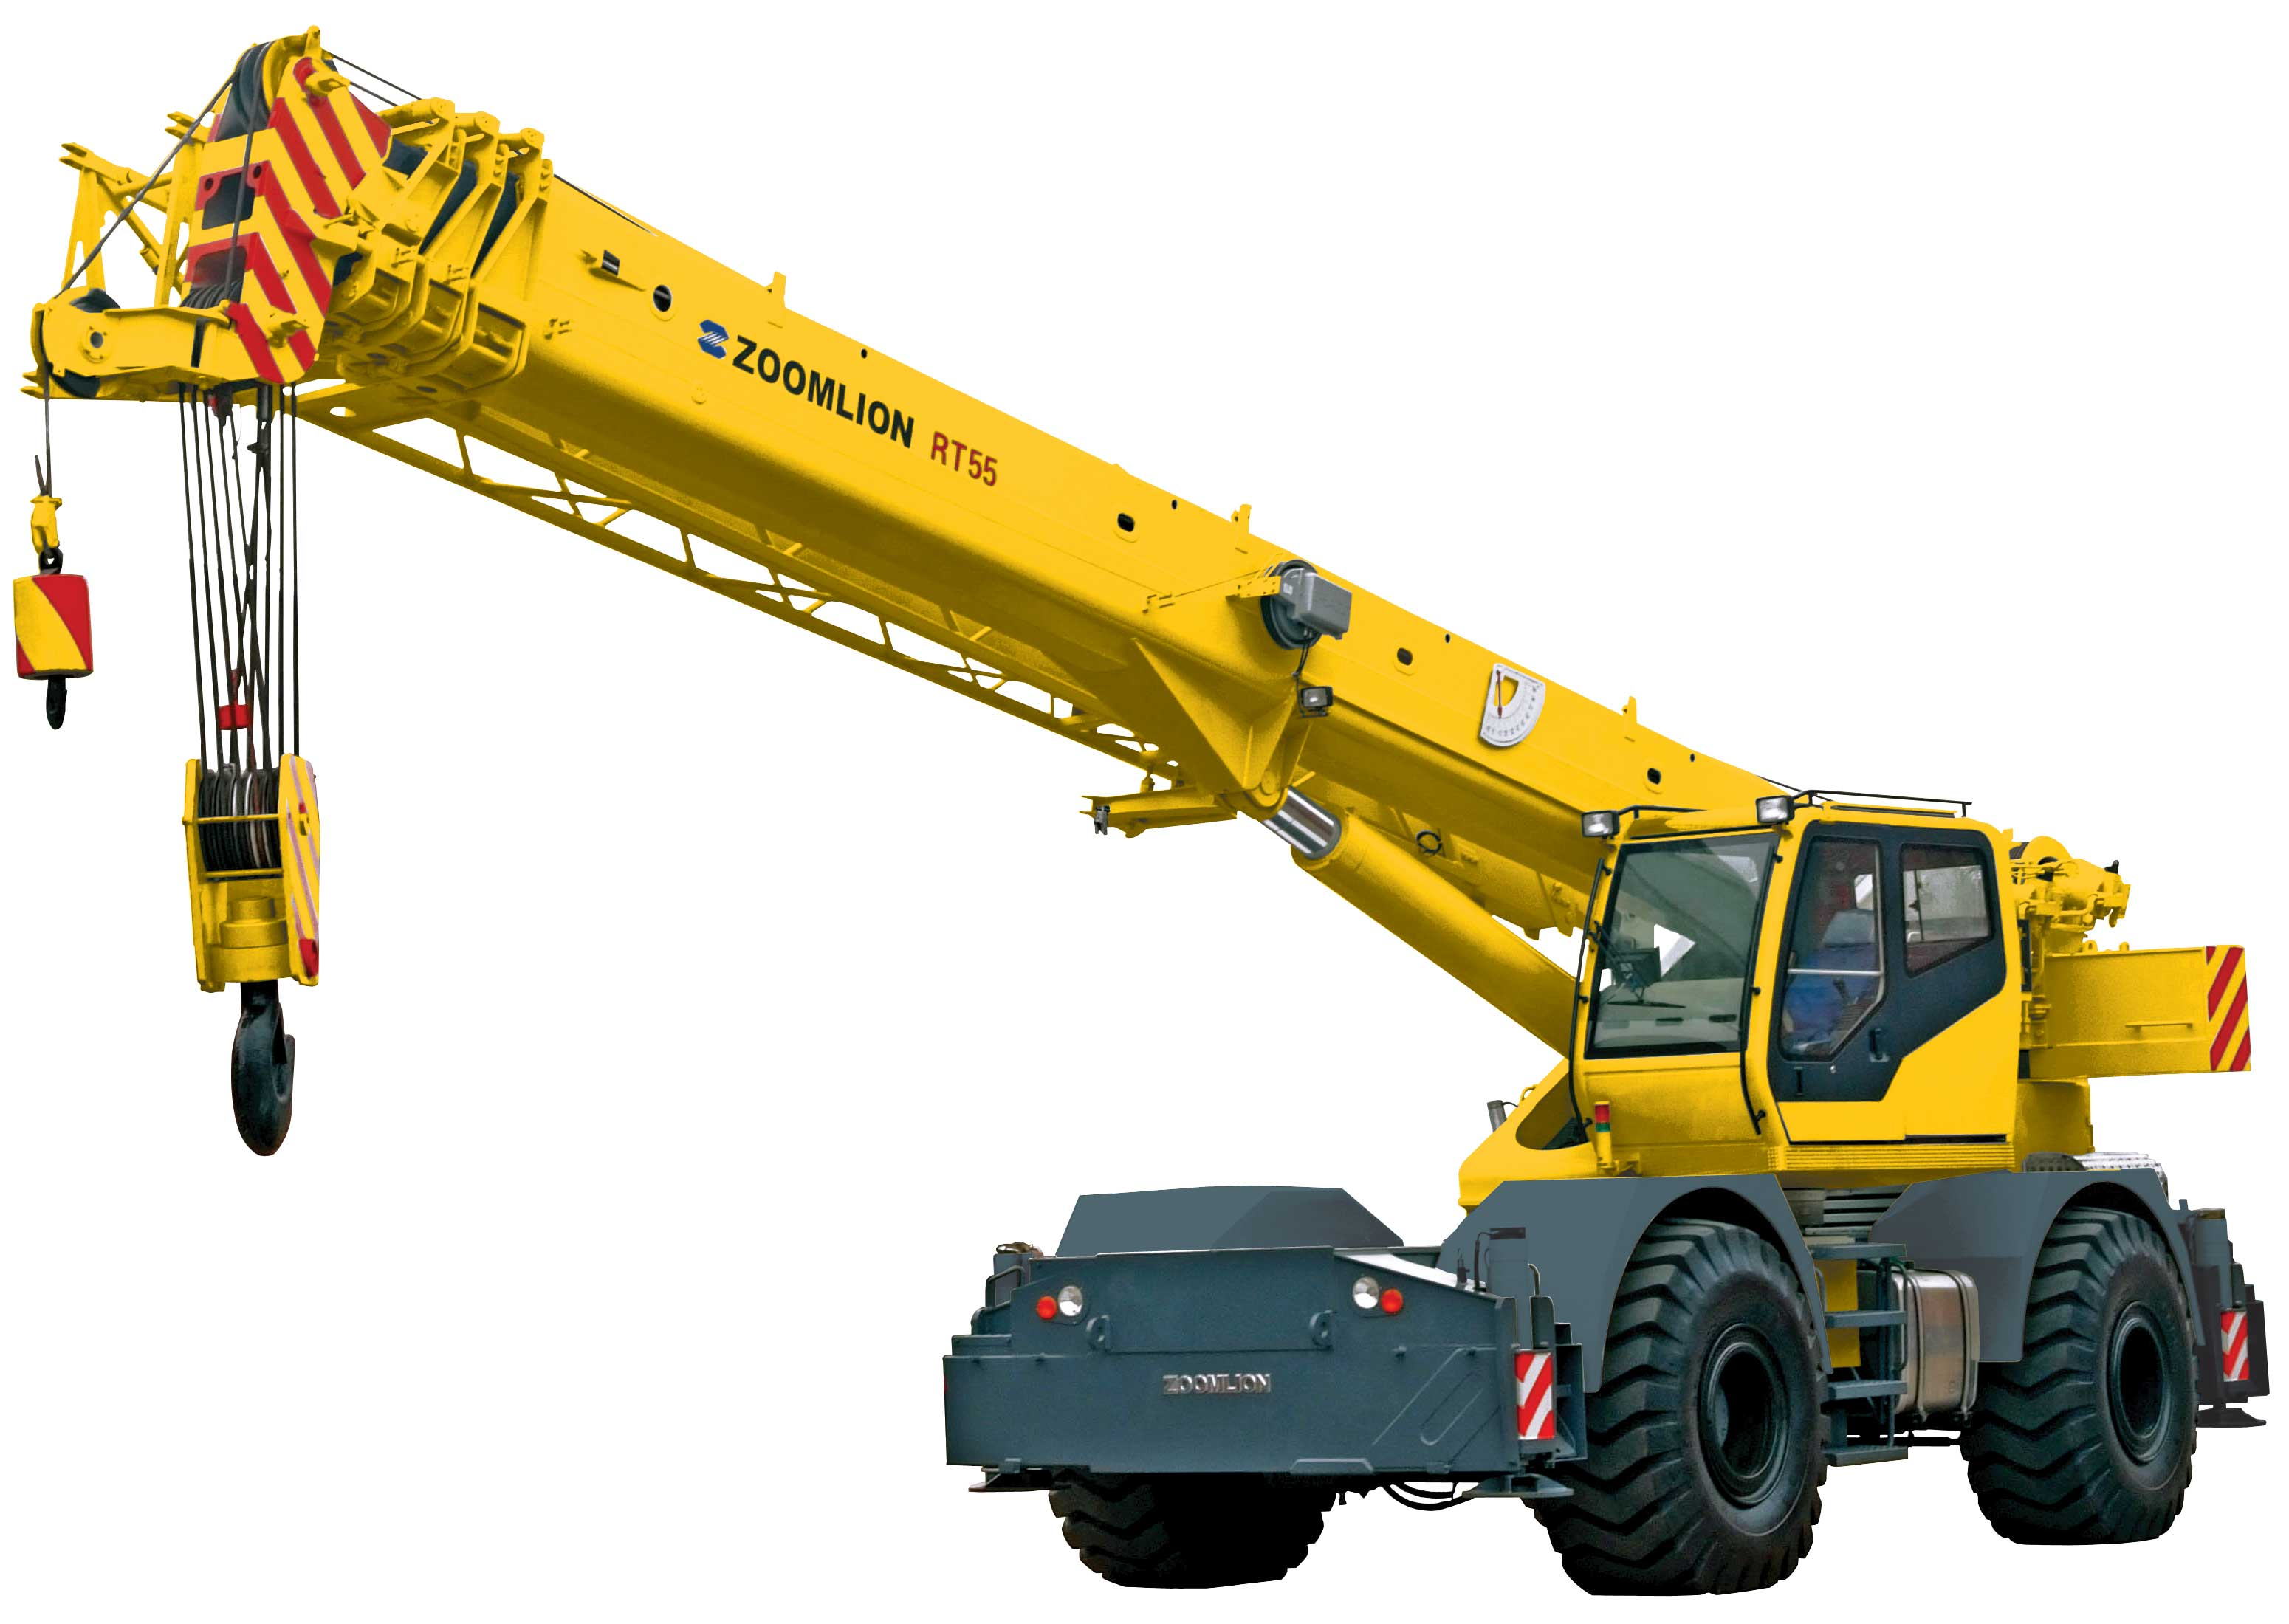 Global crane sales debuts groundbreaking zoomlion rt55 for The crain